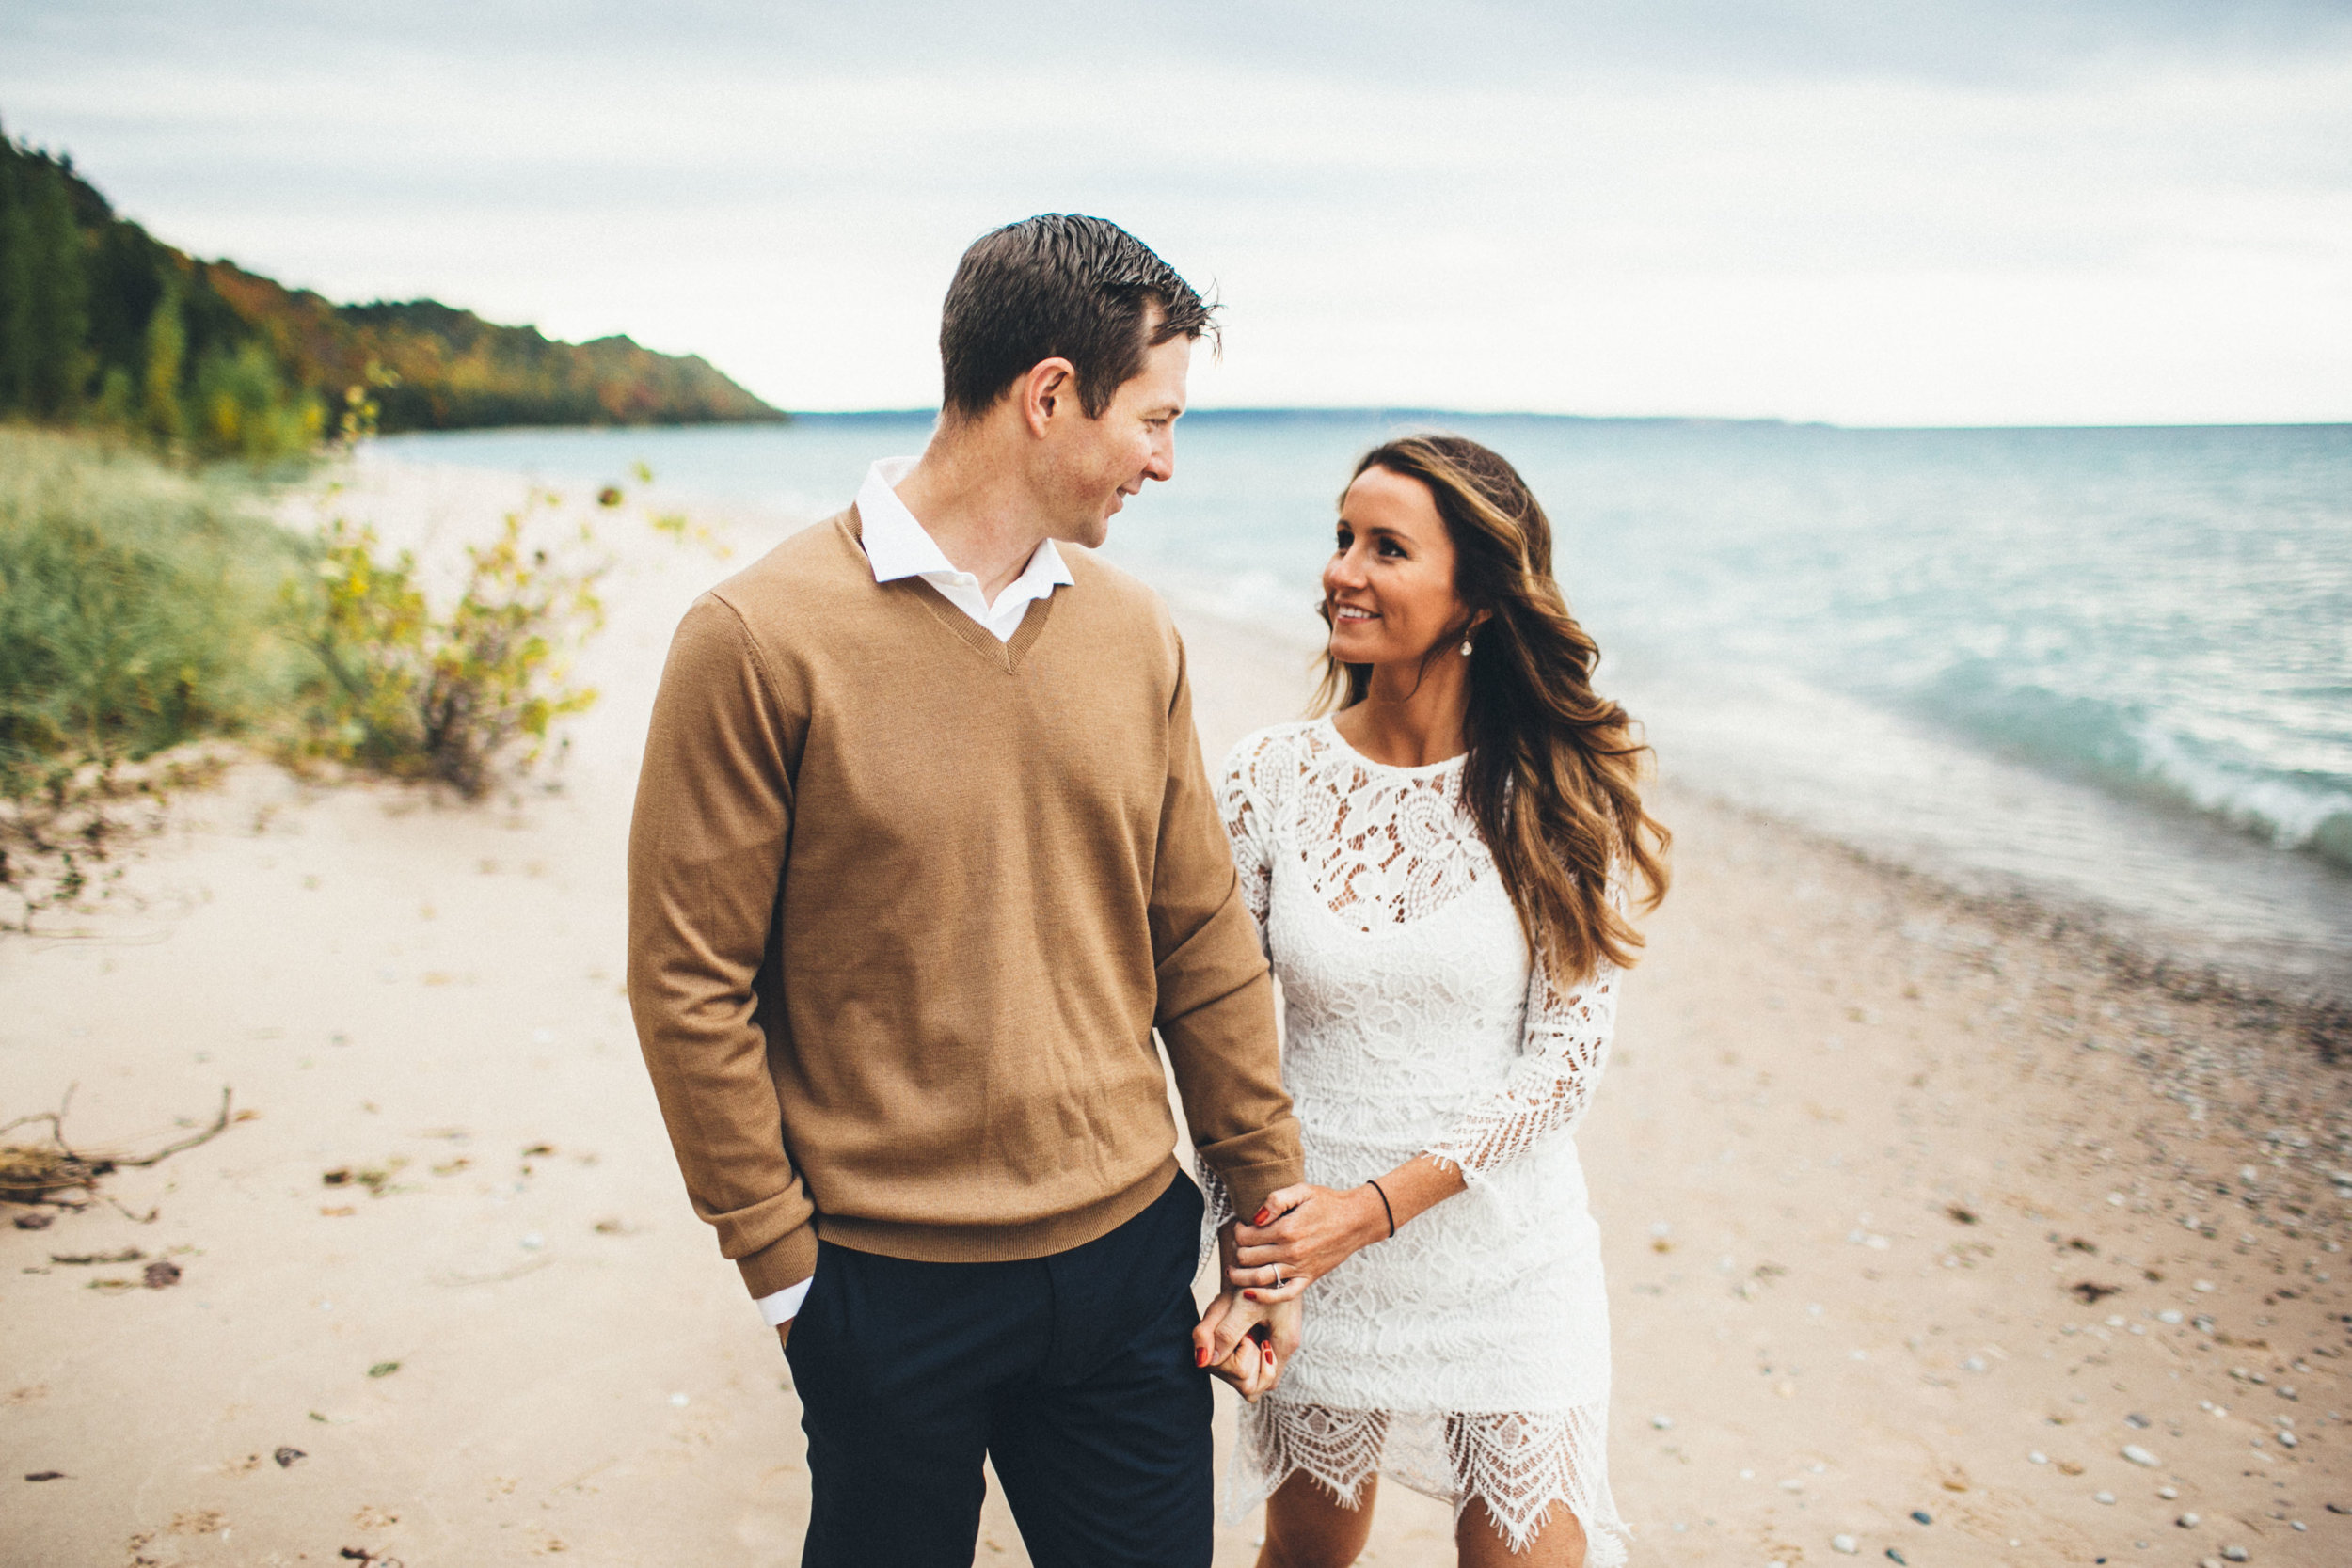 Carlie_Kevin_Northern_Michigan_Engagement_006.JPG